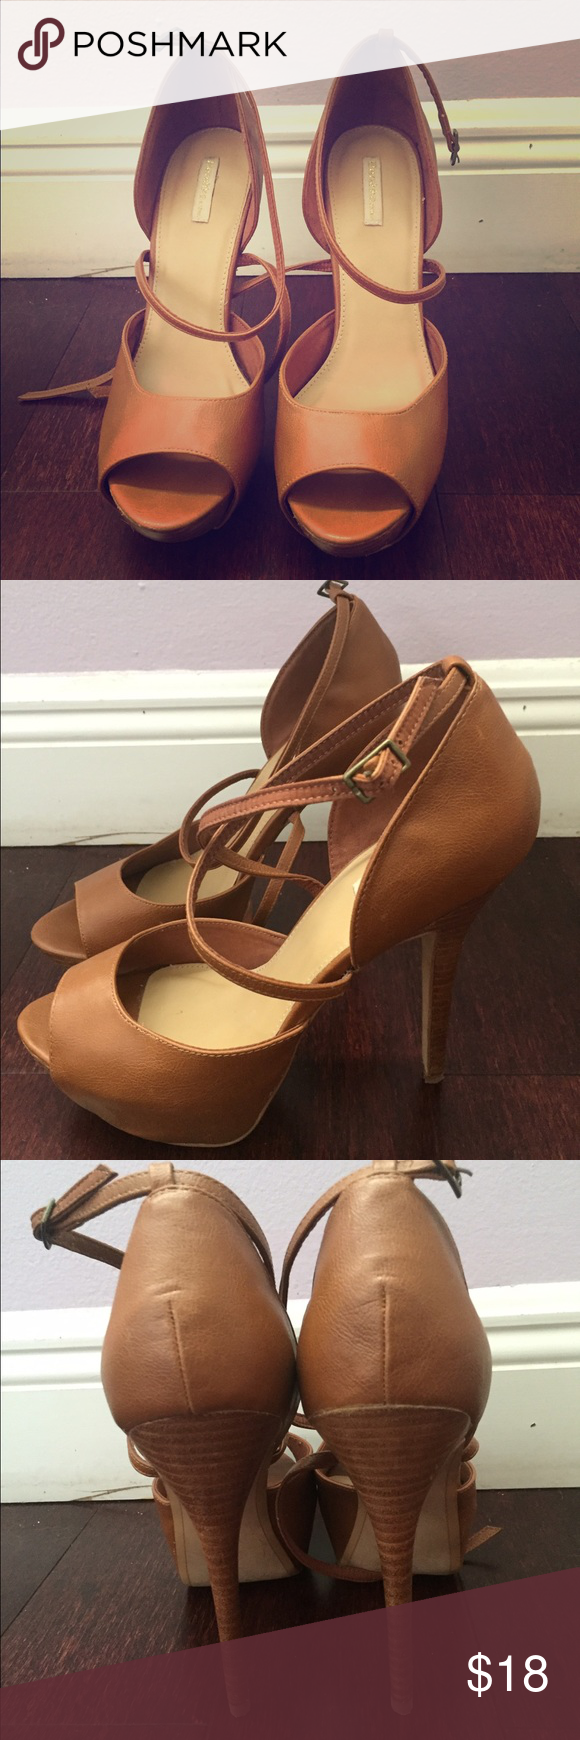 Brown open toe pumps Gently used brown pumps with cute ankle strap for more security when walking! These pumps were only worn twice and are in great condition! Bershka Shoes Heels